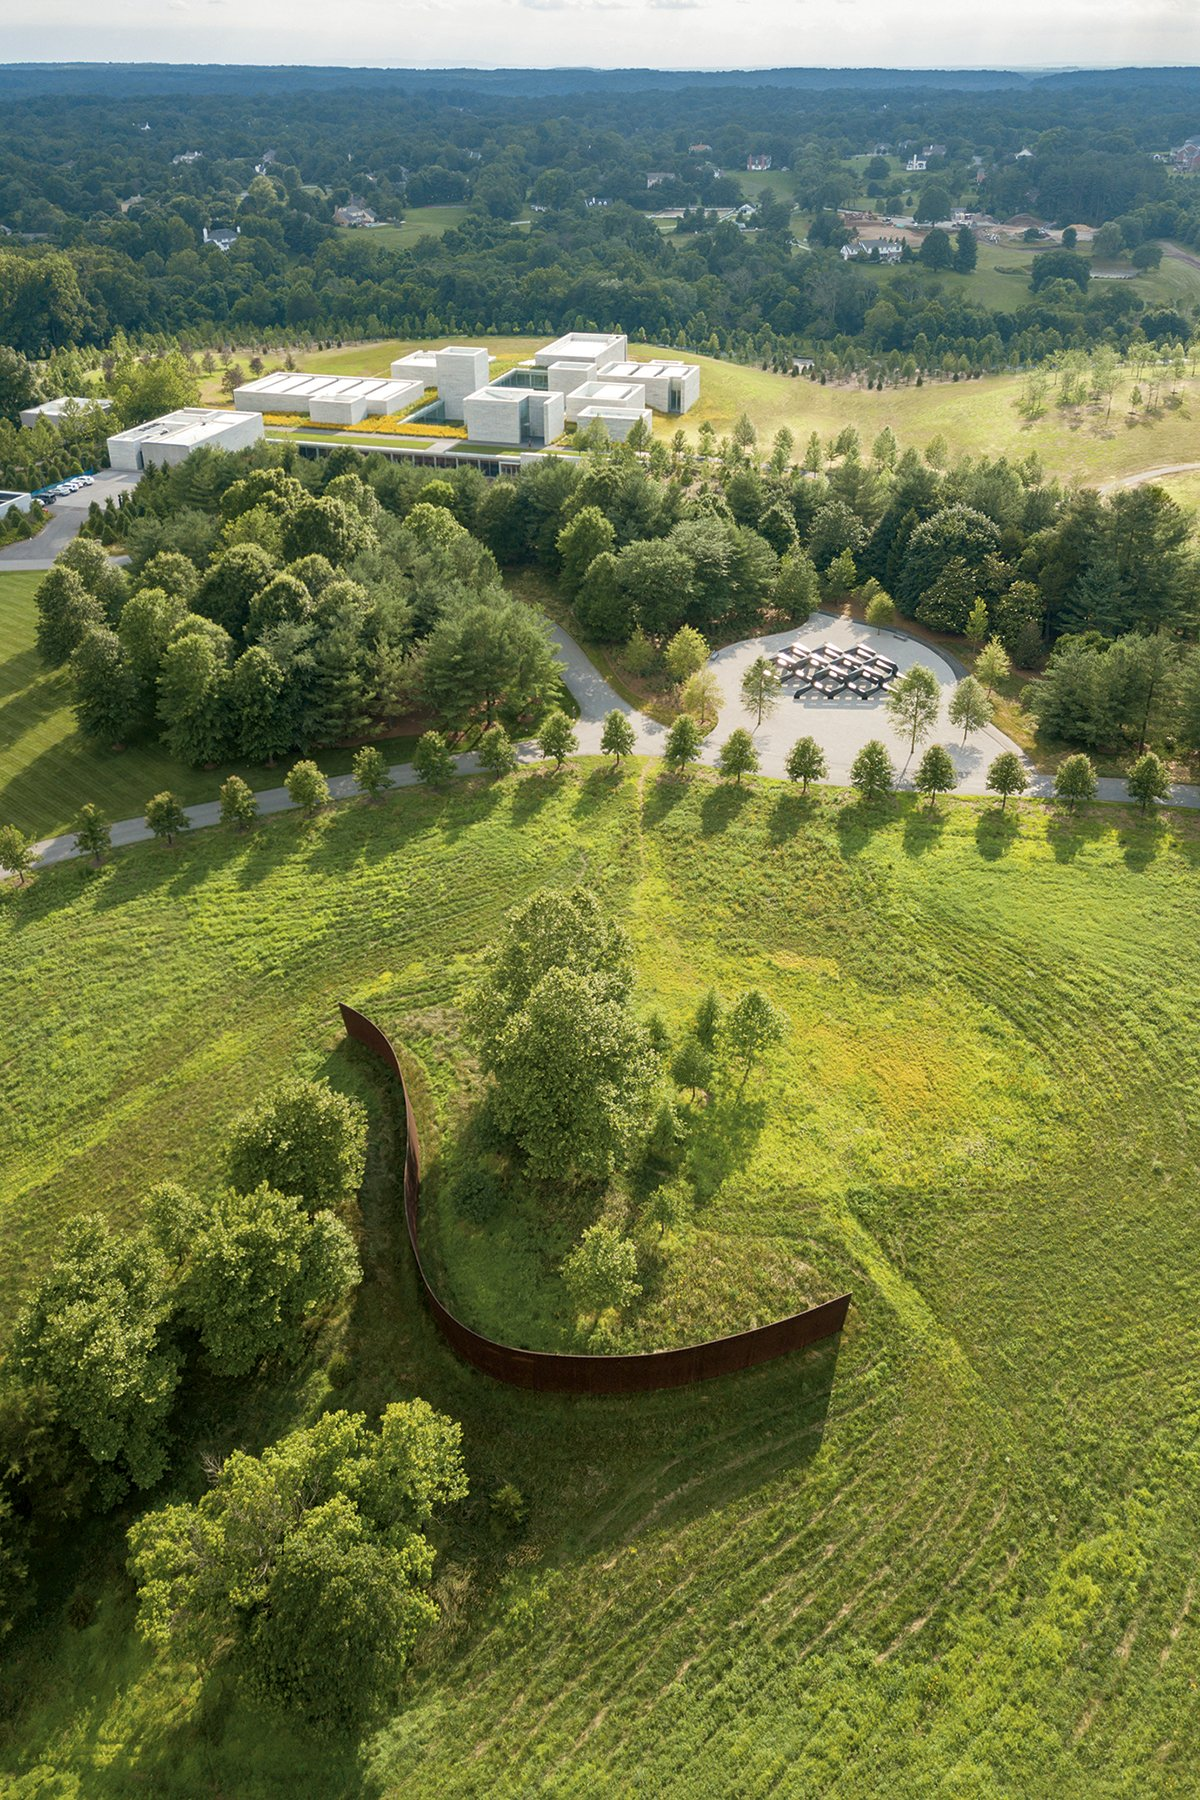 Surrounded by a lush landscape, Glenstone's new building is mostly underground. Photograph by Iwan Baan.